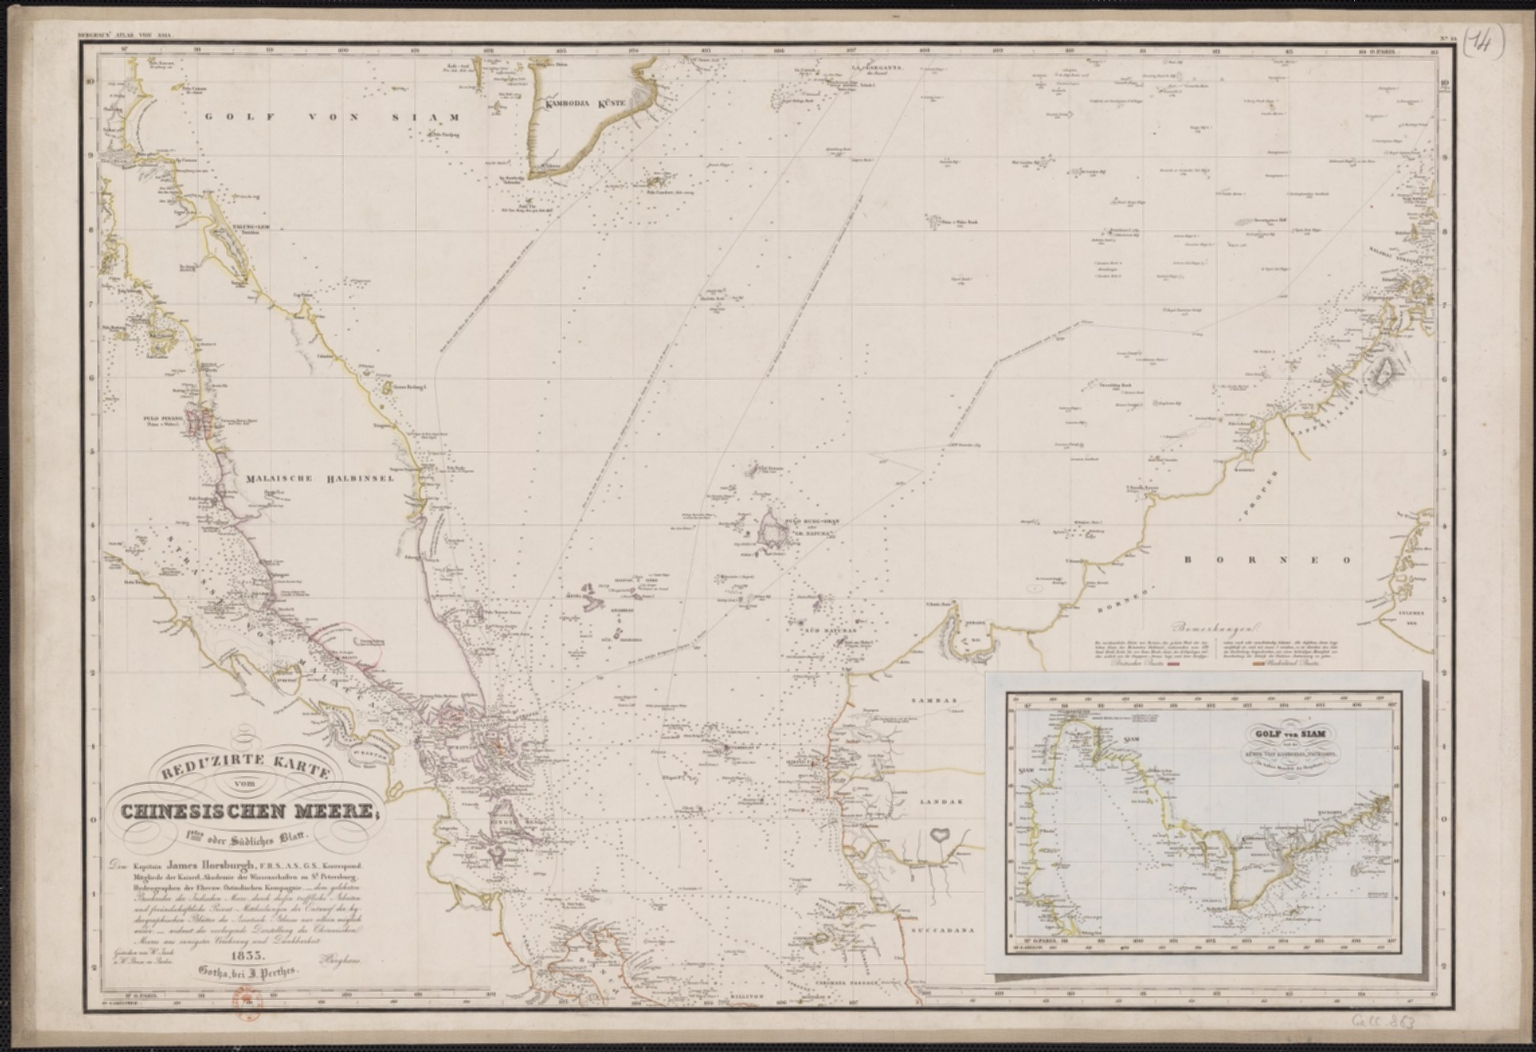 Reduced map of the Chinese Sea : 1st or southern leaf. eng